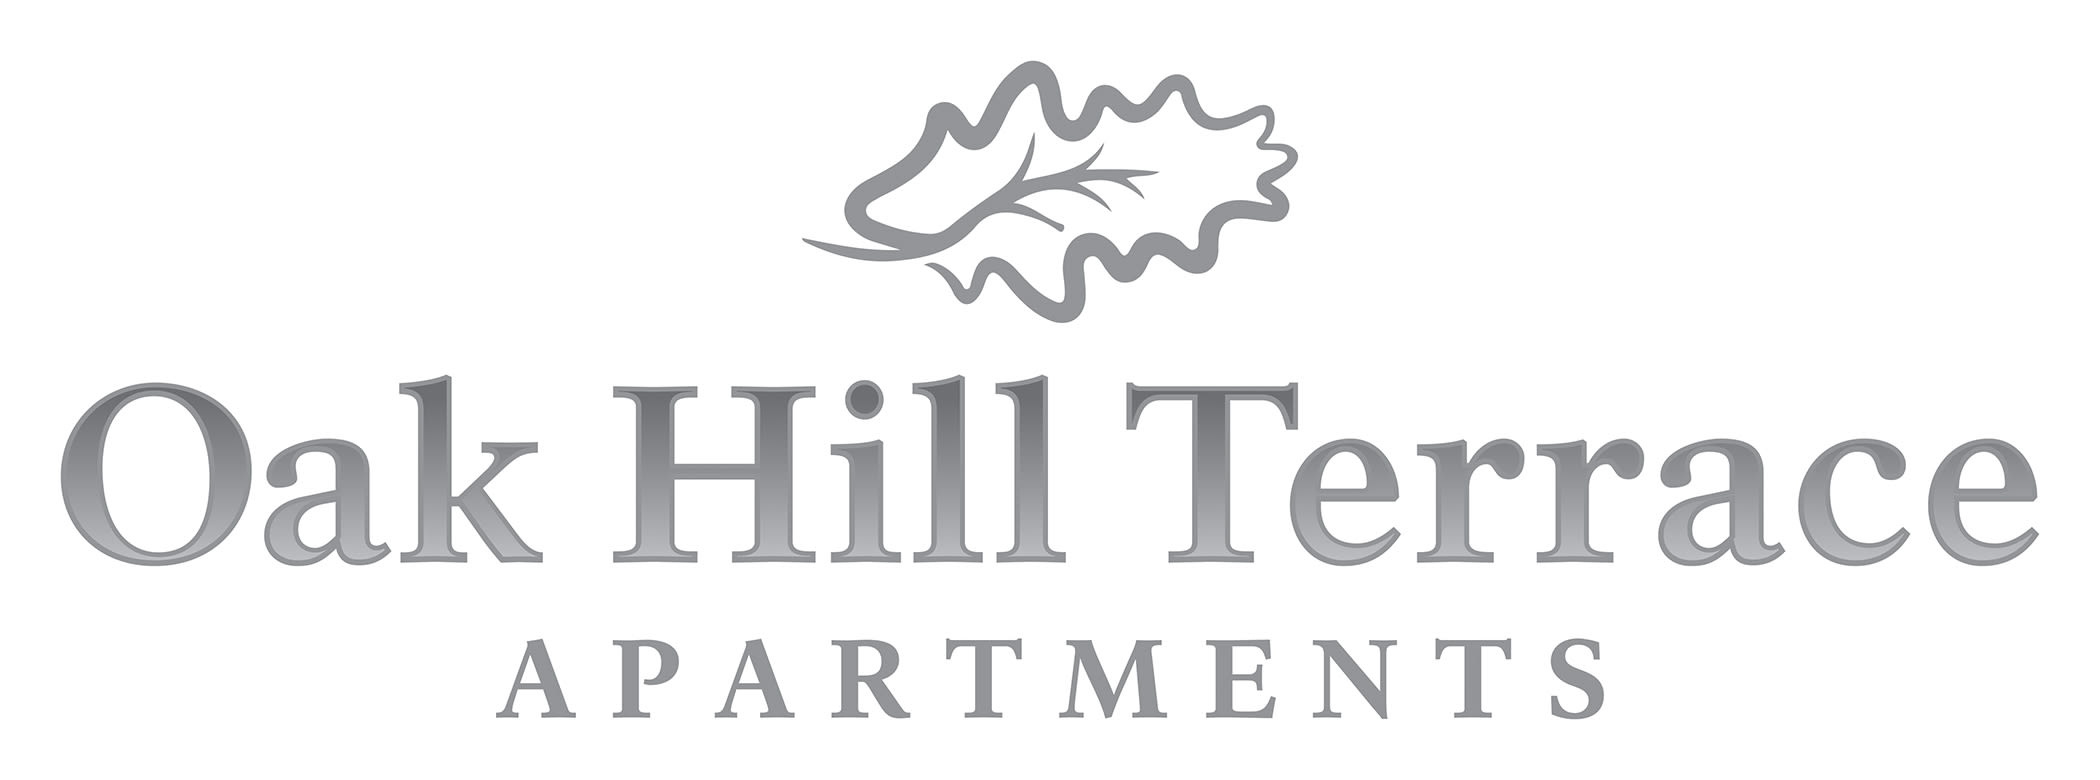 Oak Hill Terrace